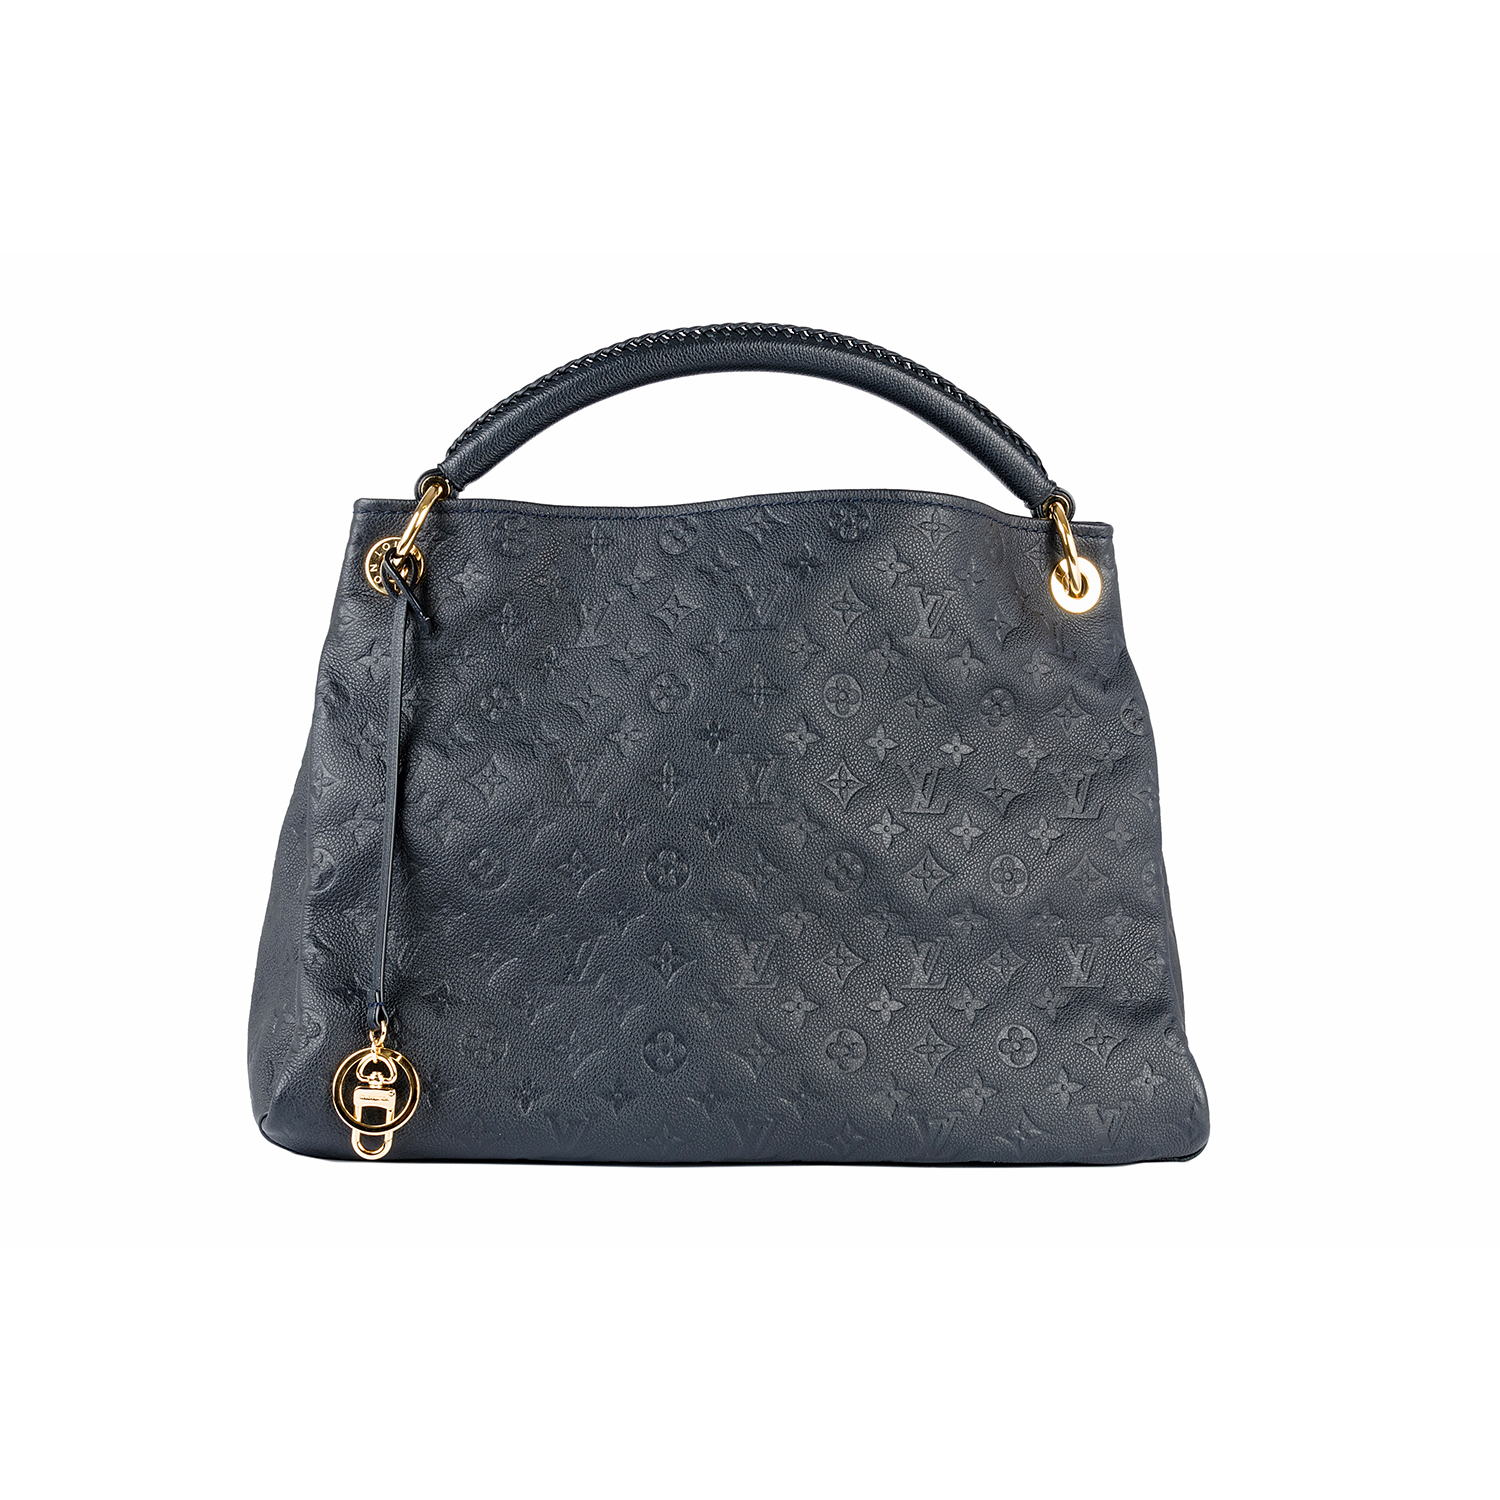 Borsa in affitto louis vuitton artsy mm su rent fashion bag for Amazon borse louis vuitton